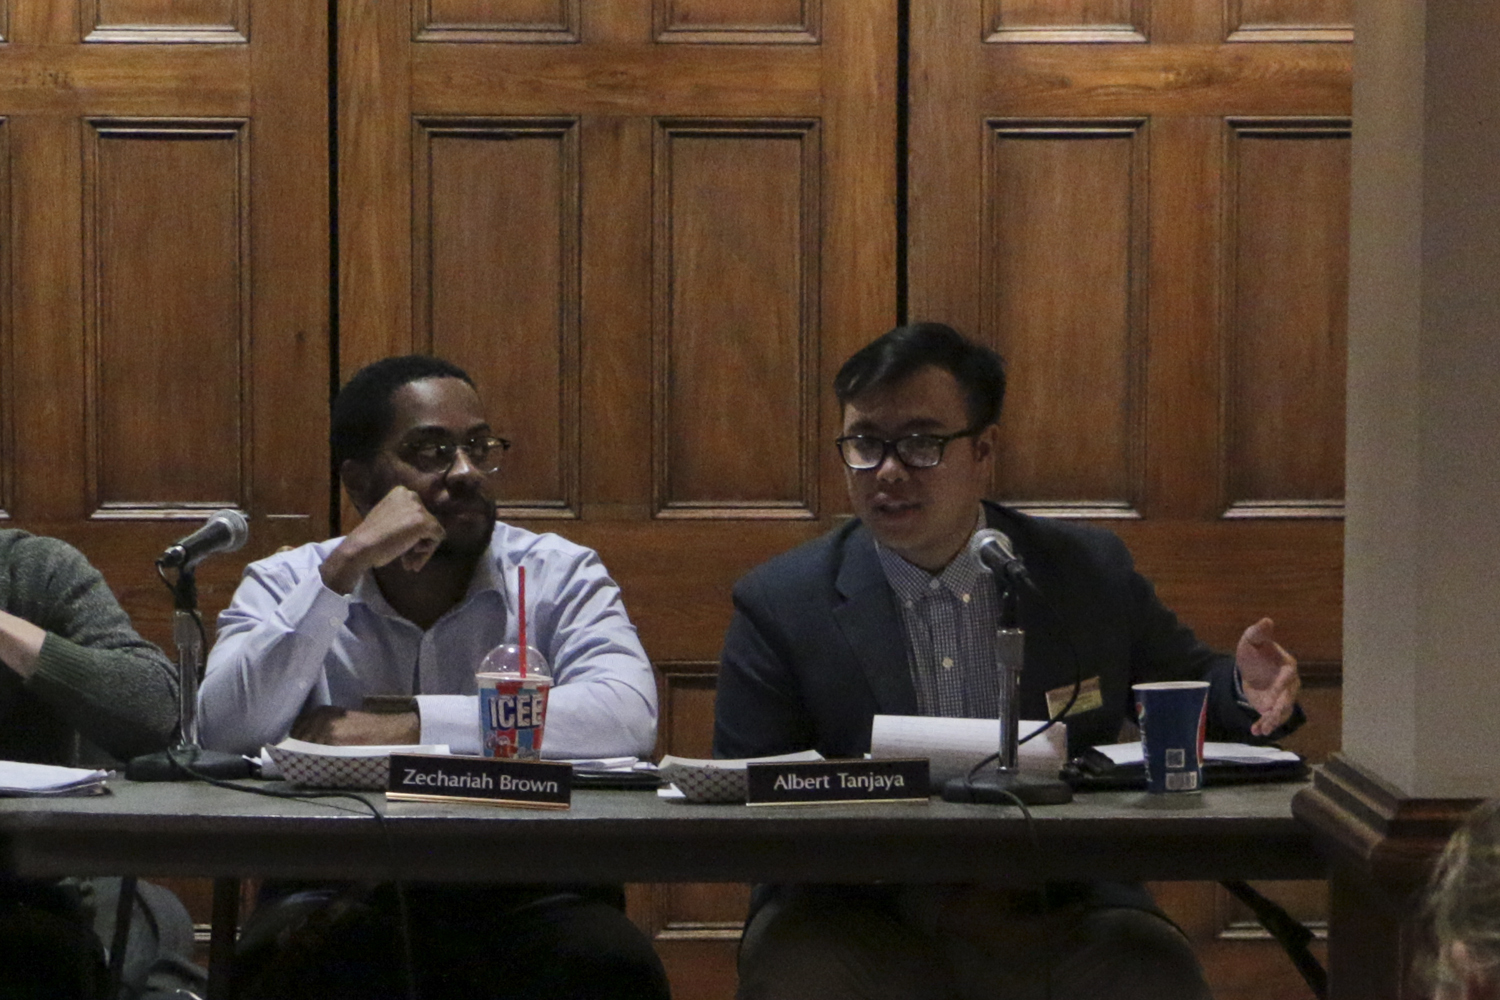 Board members Albert Tanjaya and Zechariah Brown are both running for SGB president.